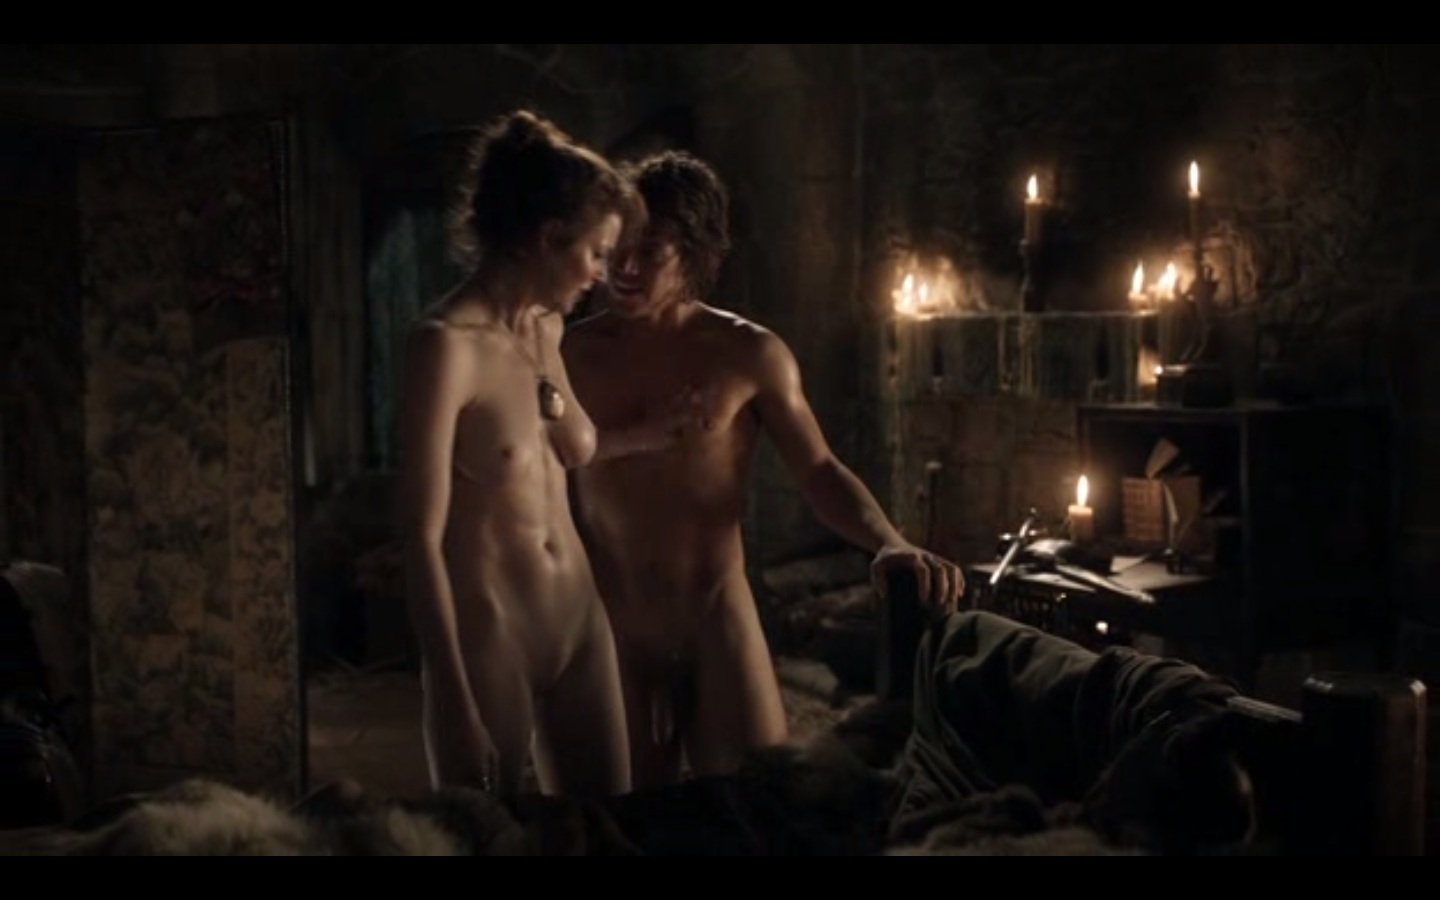 Naked women slaves medieval torture videos porn video